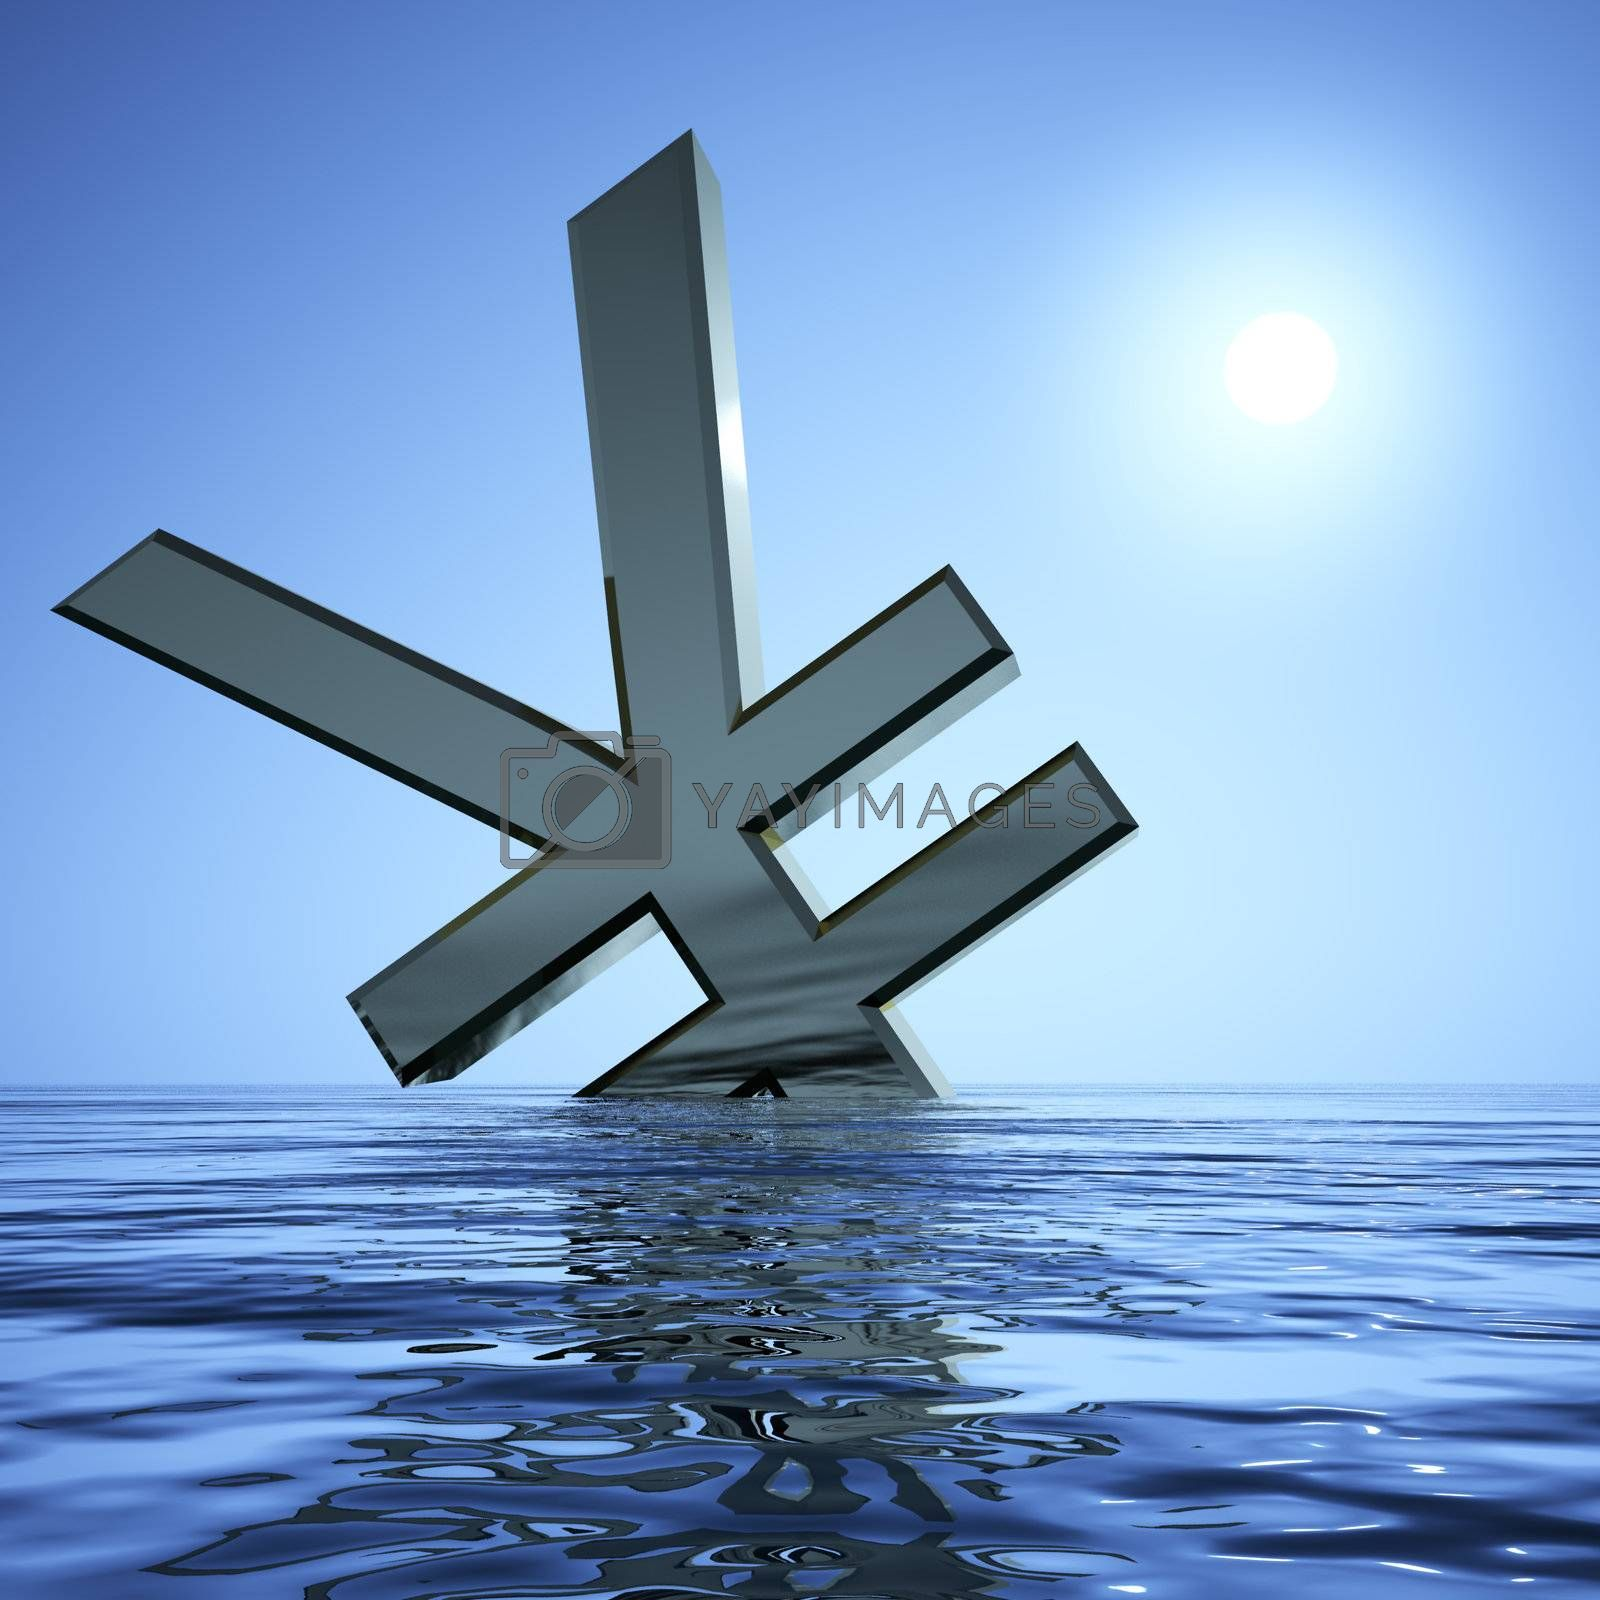 Yen Sinking In The Sea  Showing Depression Recession And Economic Downturns